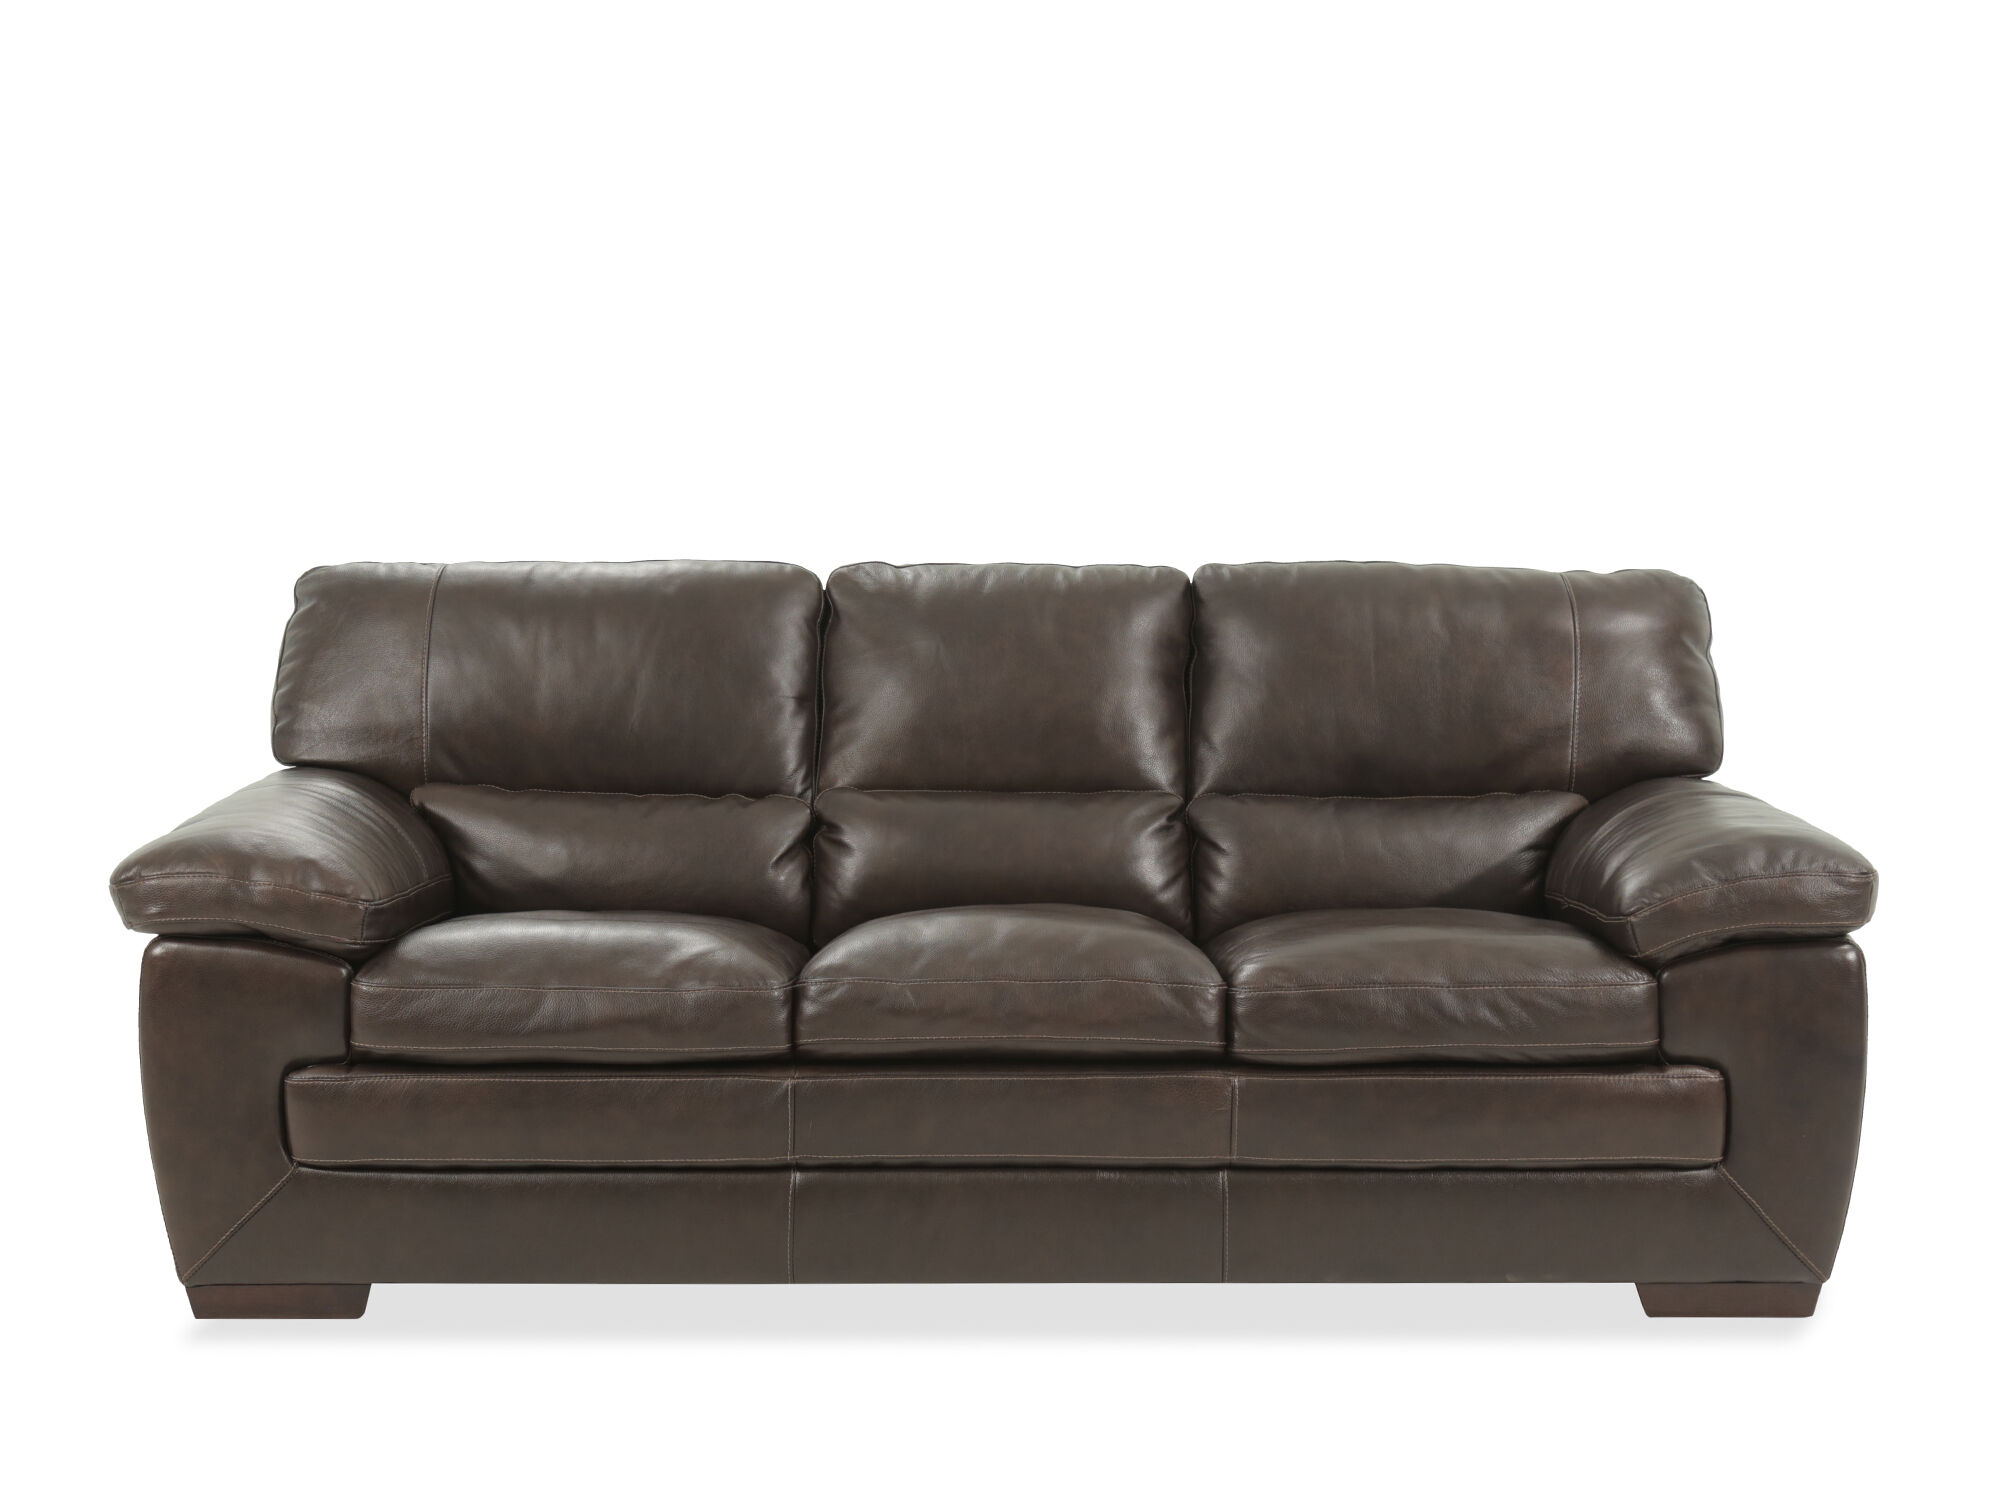 87 leather sofa in